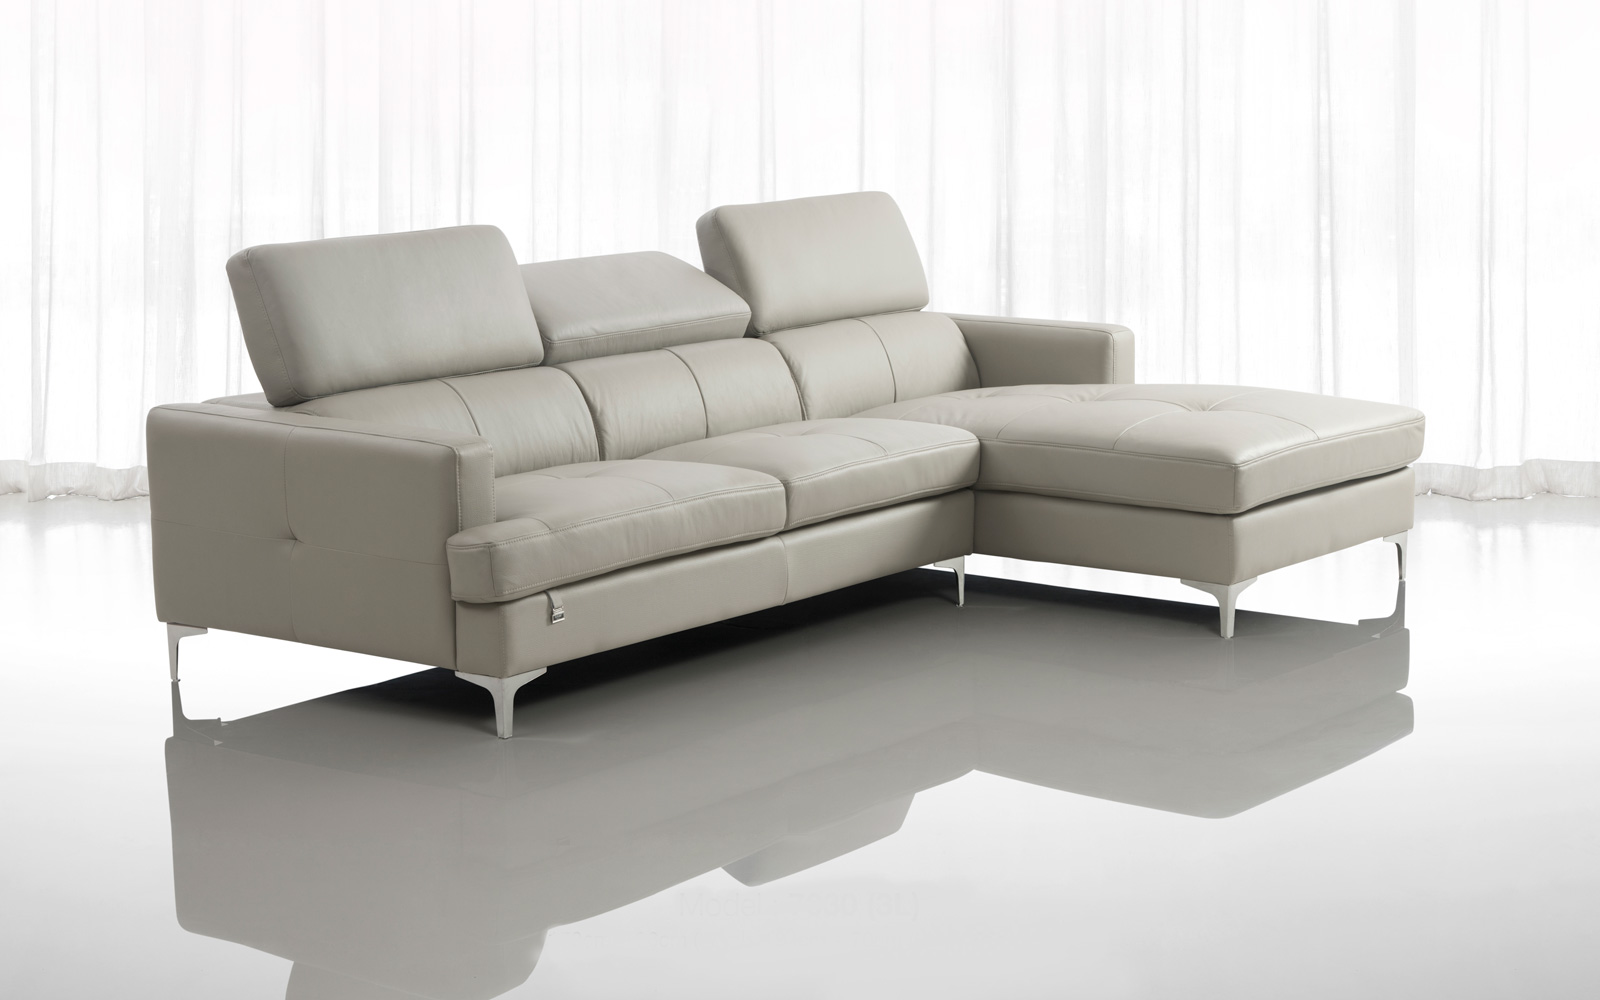 SOFA DA BÒ CHỮ L - FUTURE MODEL 7030 (3L)